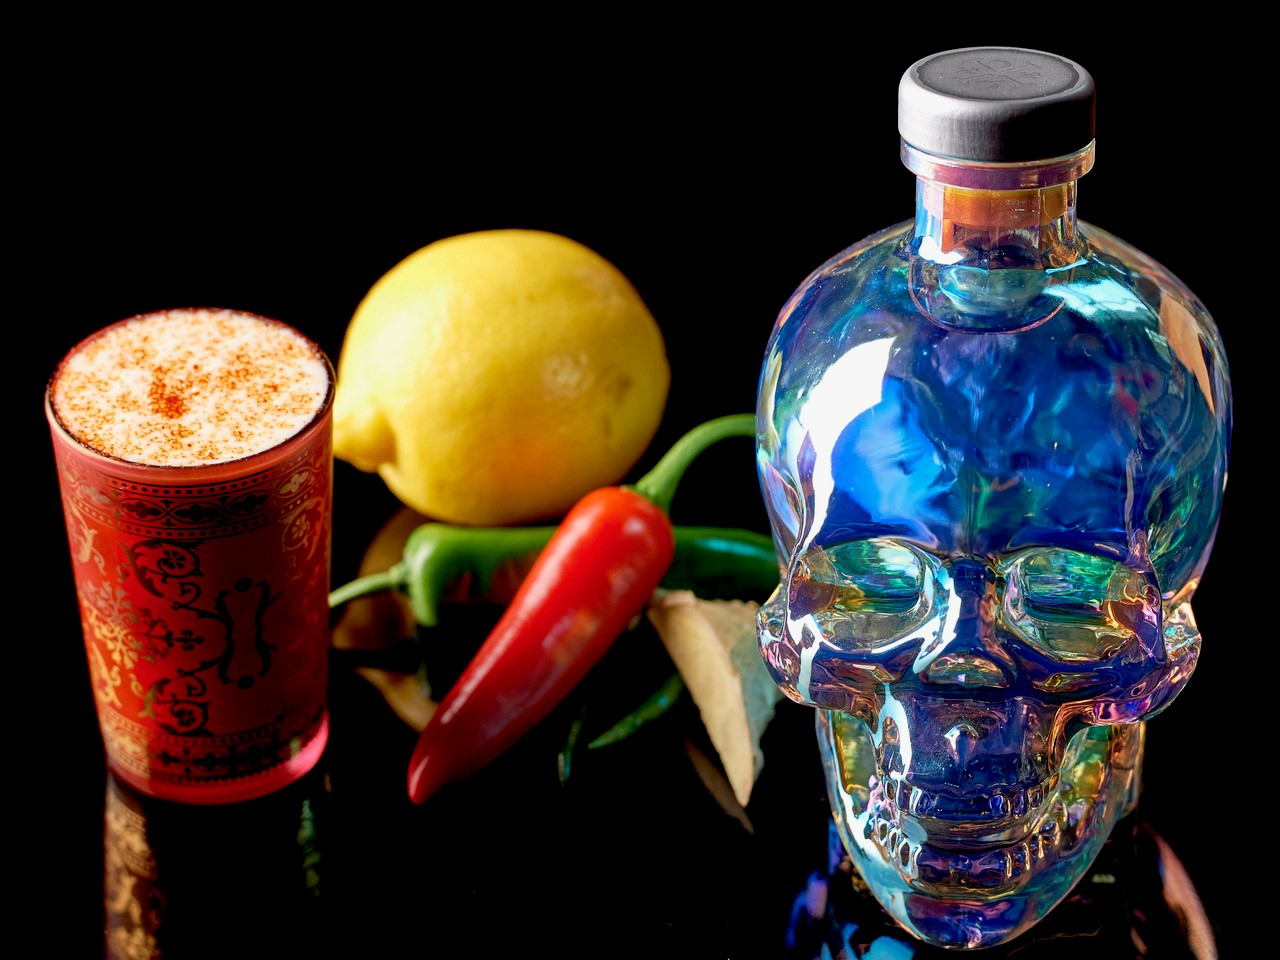 Chilli Nights by Crystal Head Vodka